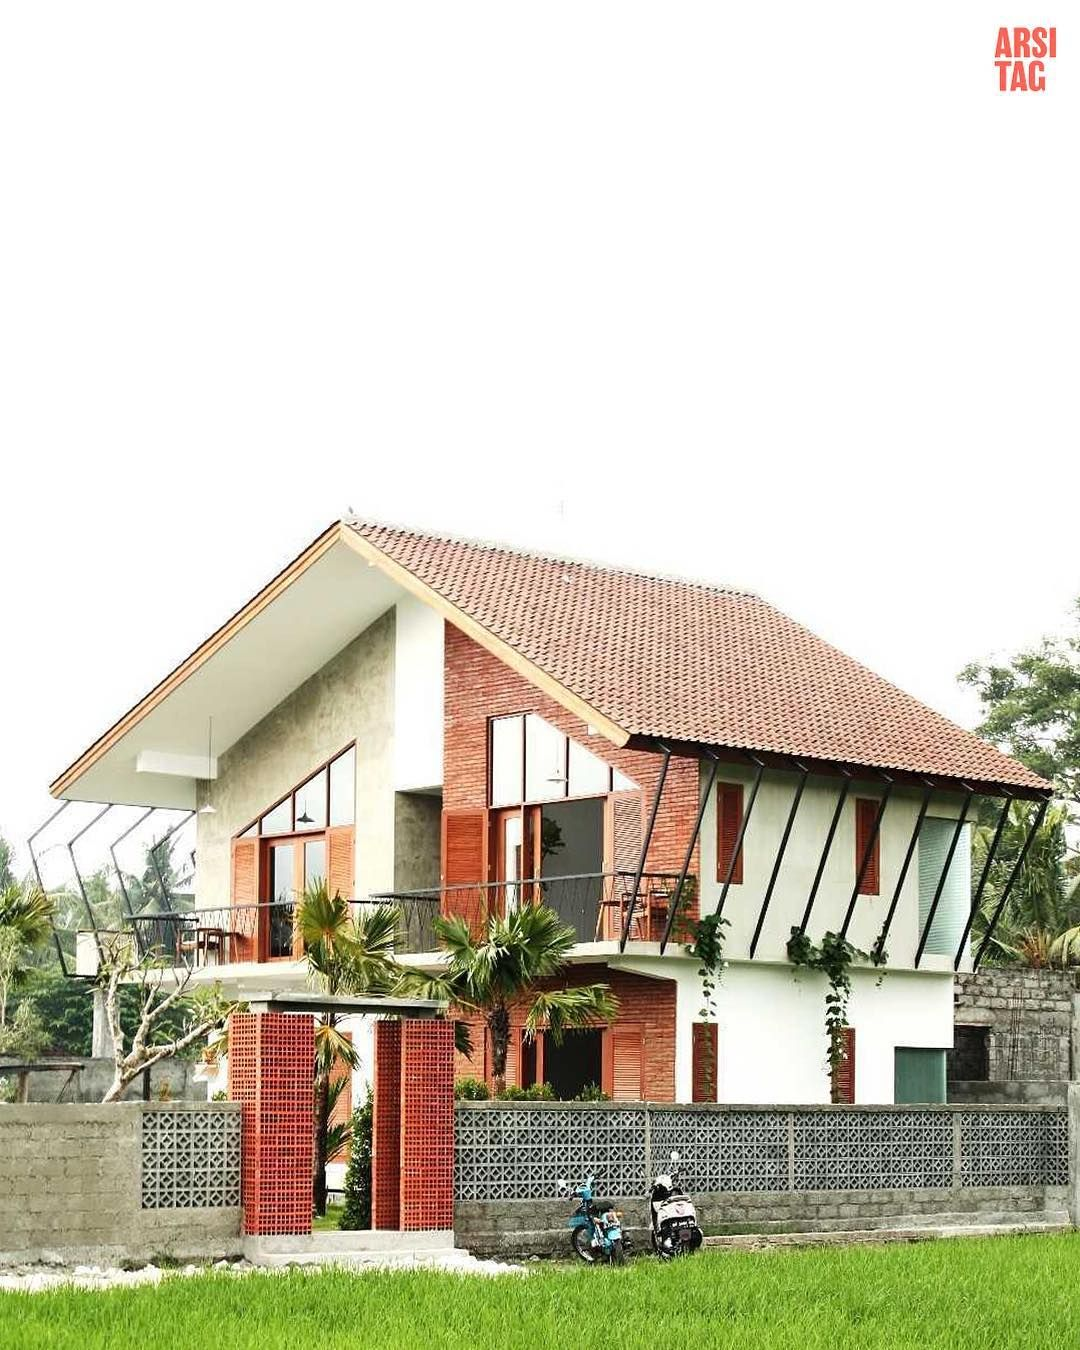 Almost Everyone Of Us Has Draw A House Surrounded By Rice Paddy Field When  We Were